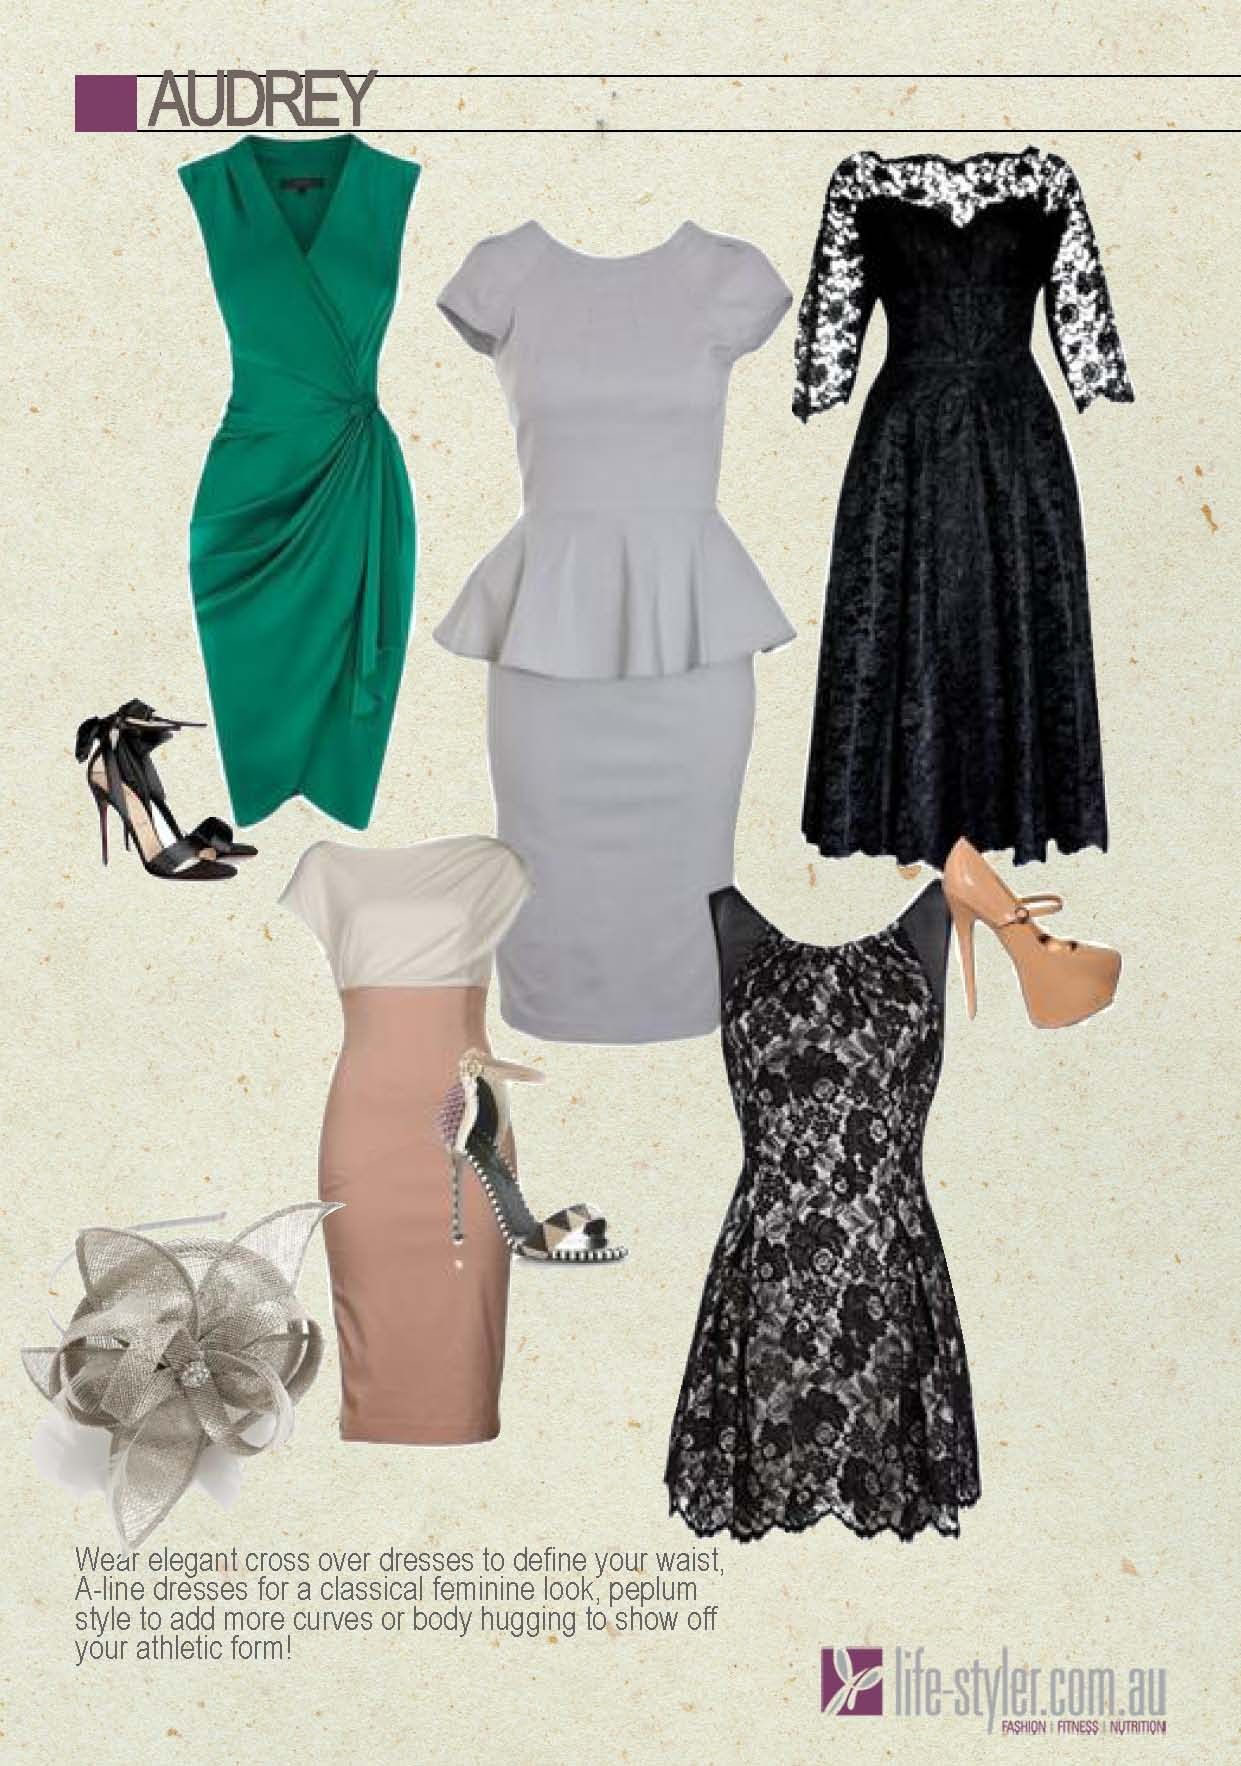 What style dress will suit my shape